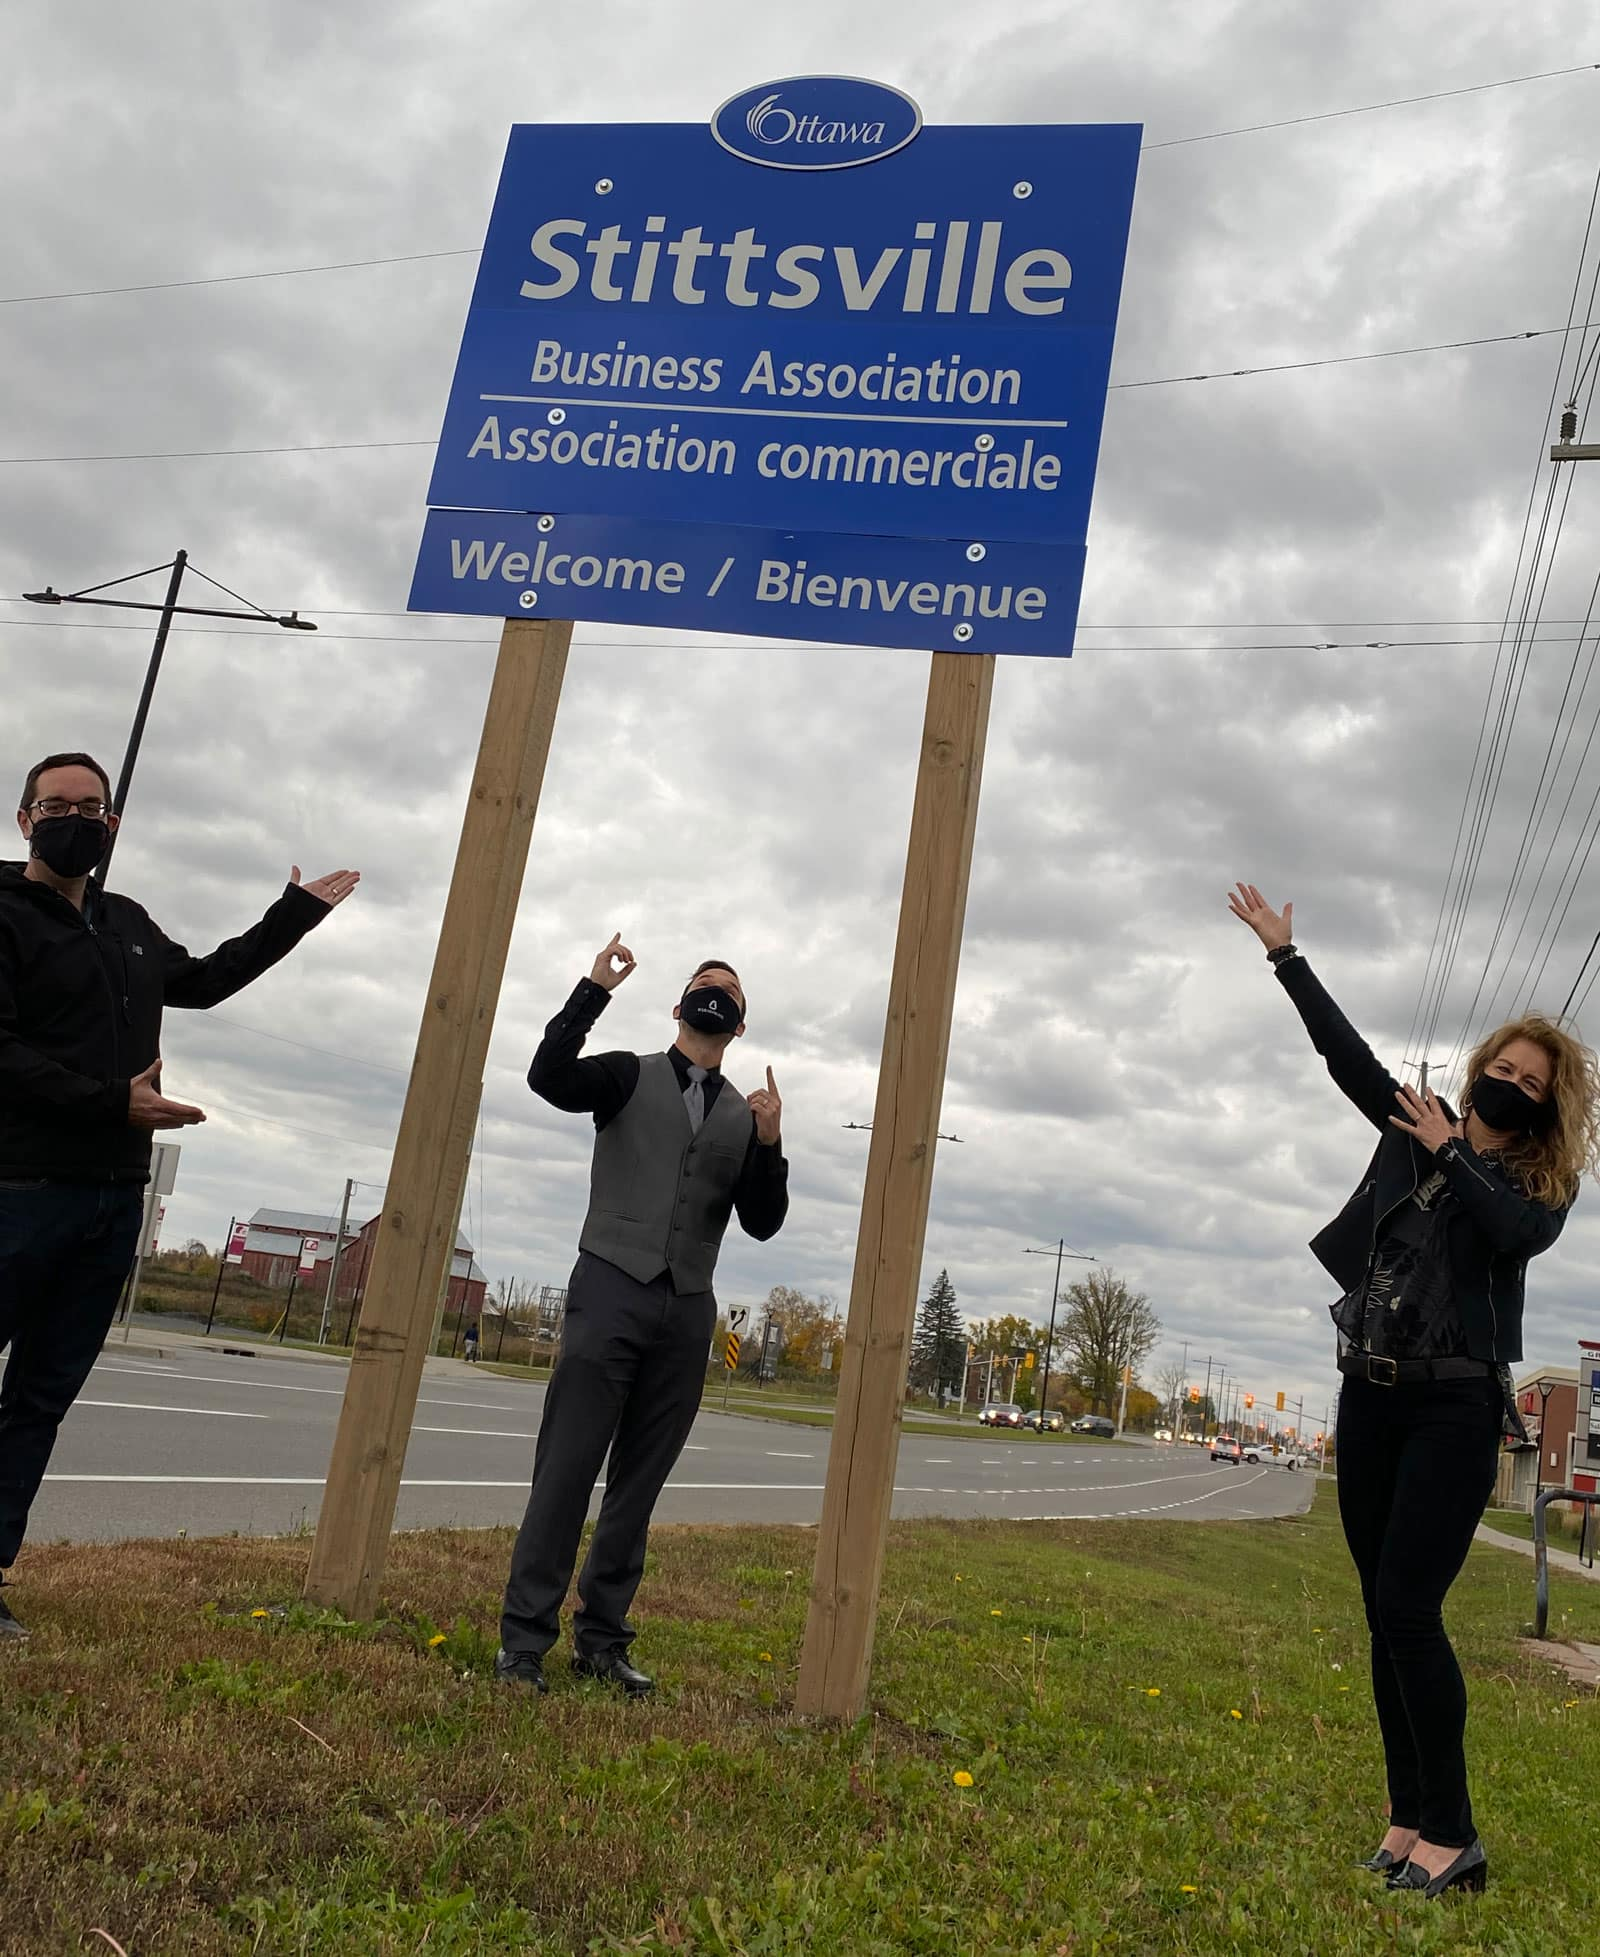 Councillor Glen Gower, Wesley Smith and Andrea Greenhaus in front of the Stittsville Business Association sign